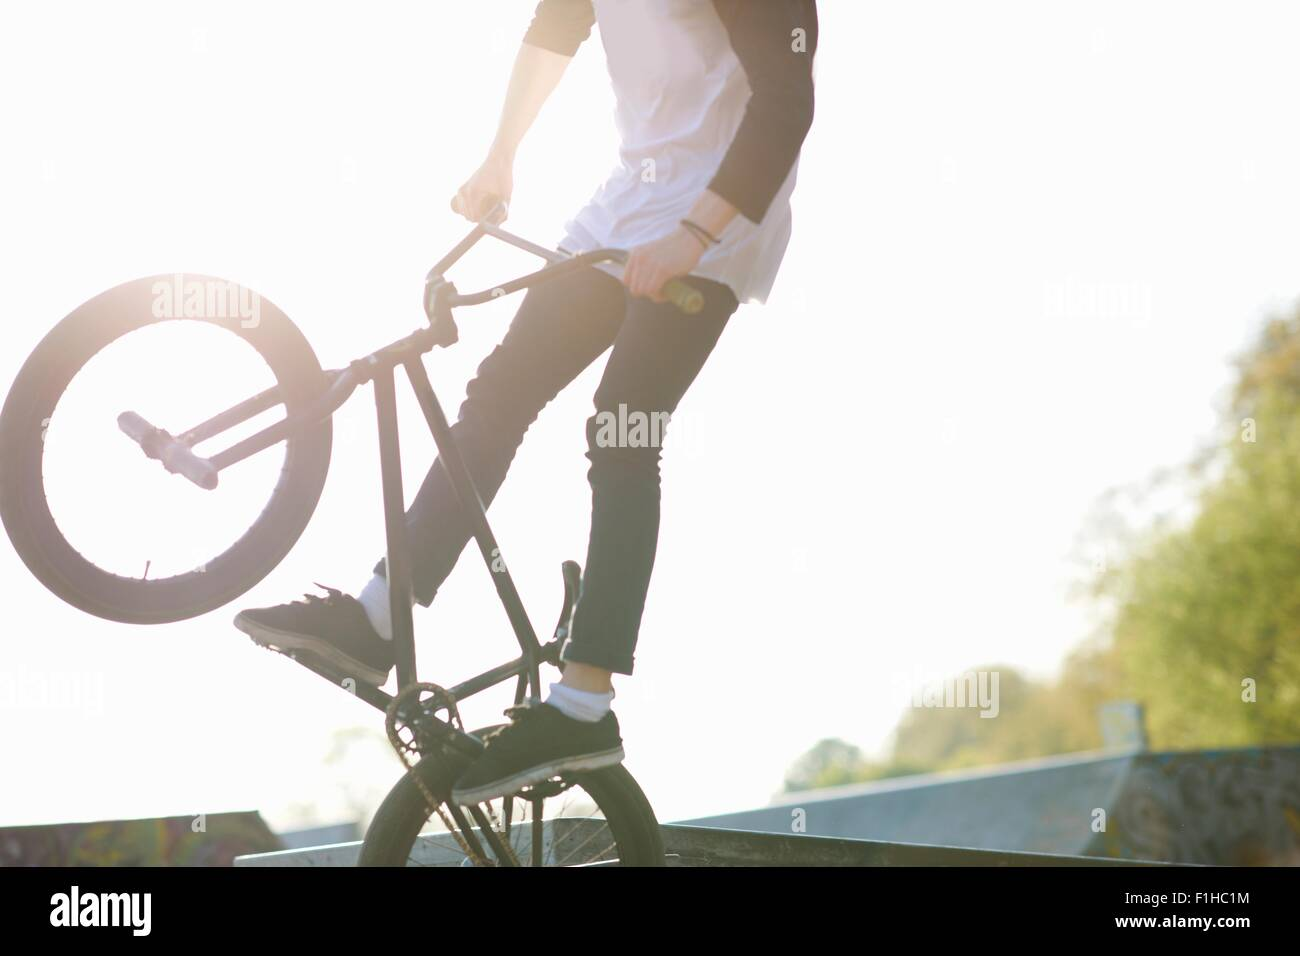 Young man doing stunt on bmx at skatepark - Stock Image